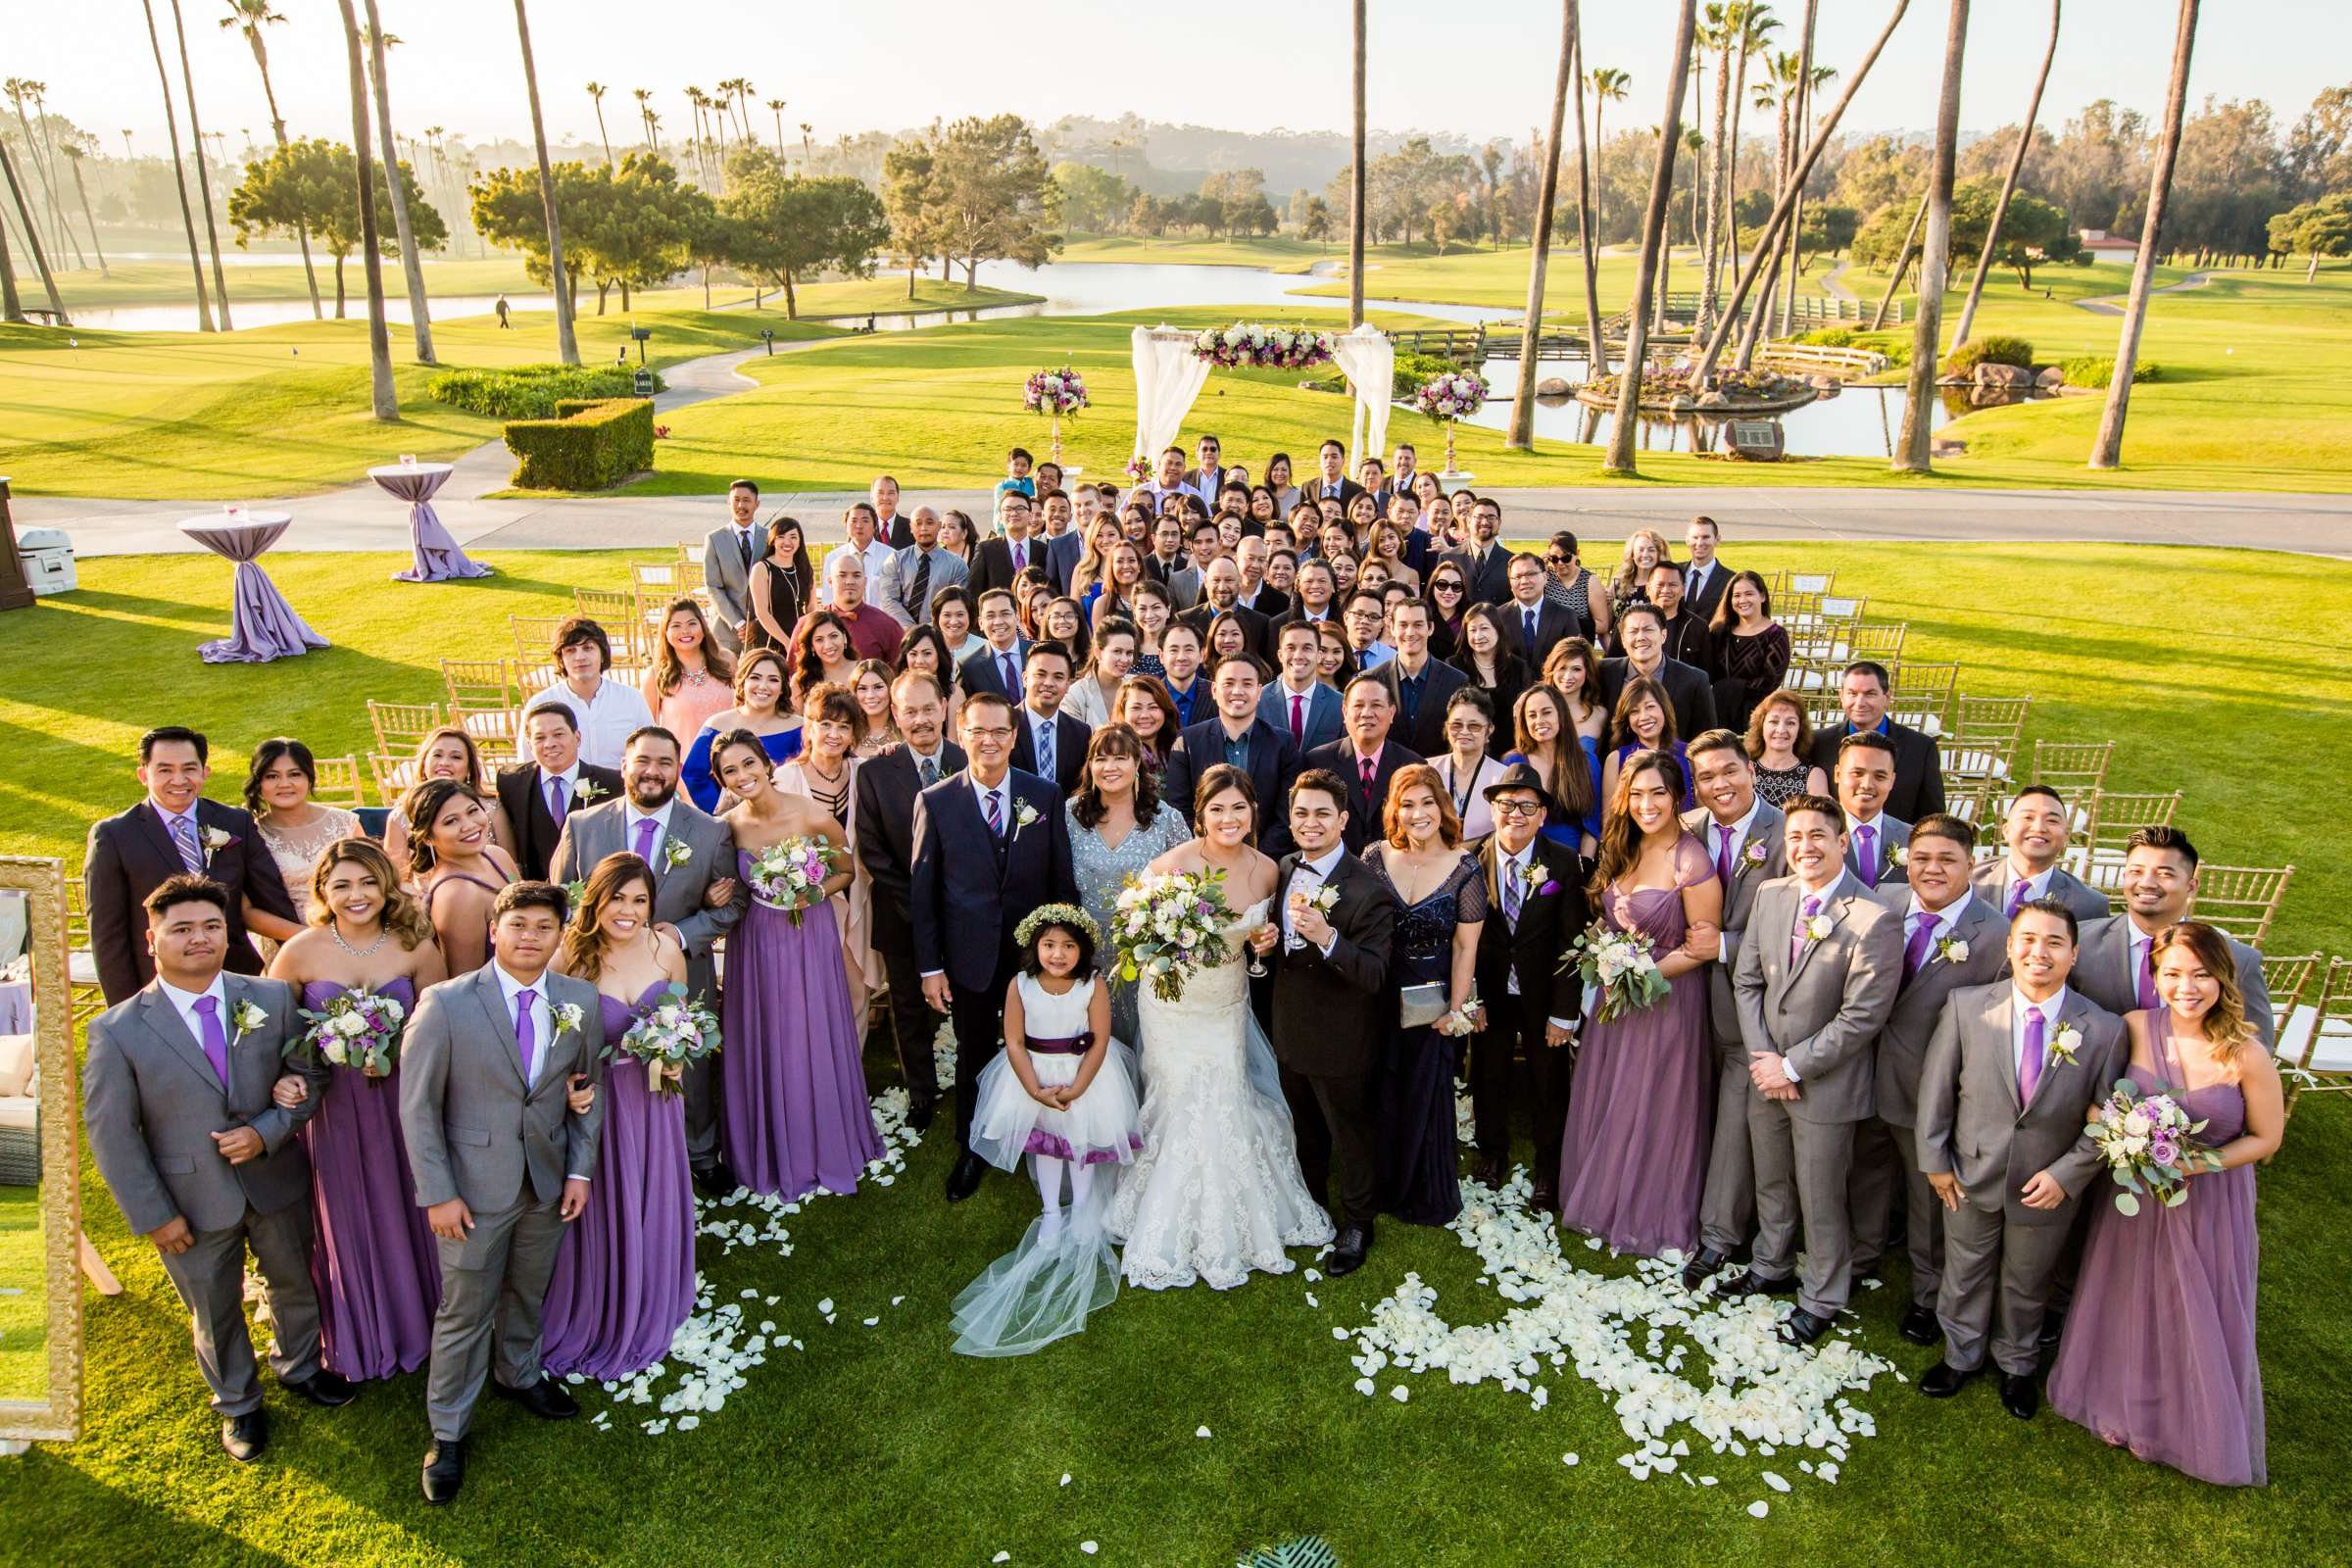 Fairbanks Ranch Country Club Wedding coordinated by Lavish Weddings, Carmi and Loriel Wedding Photo #337490 by True Photography